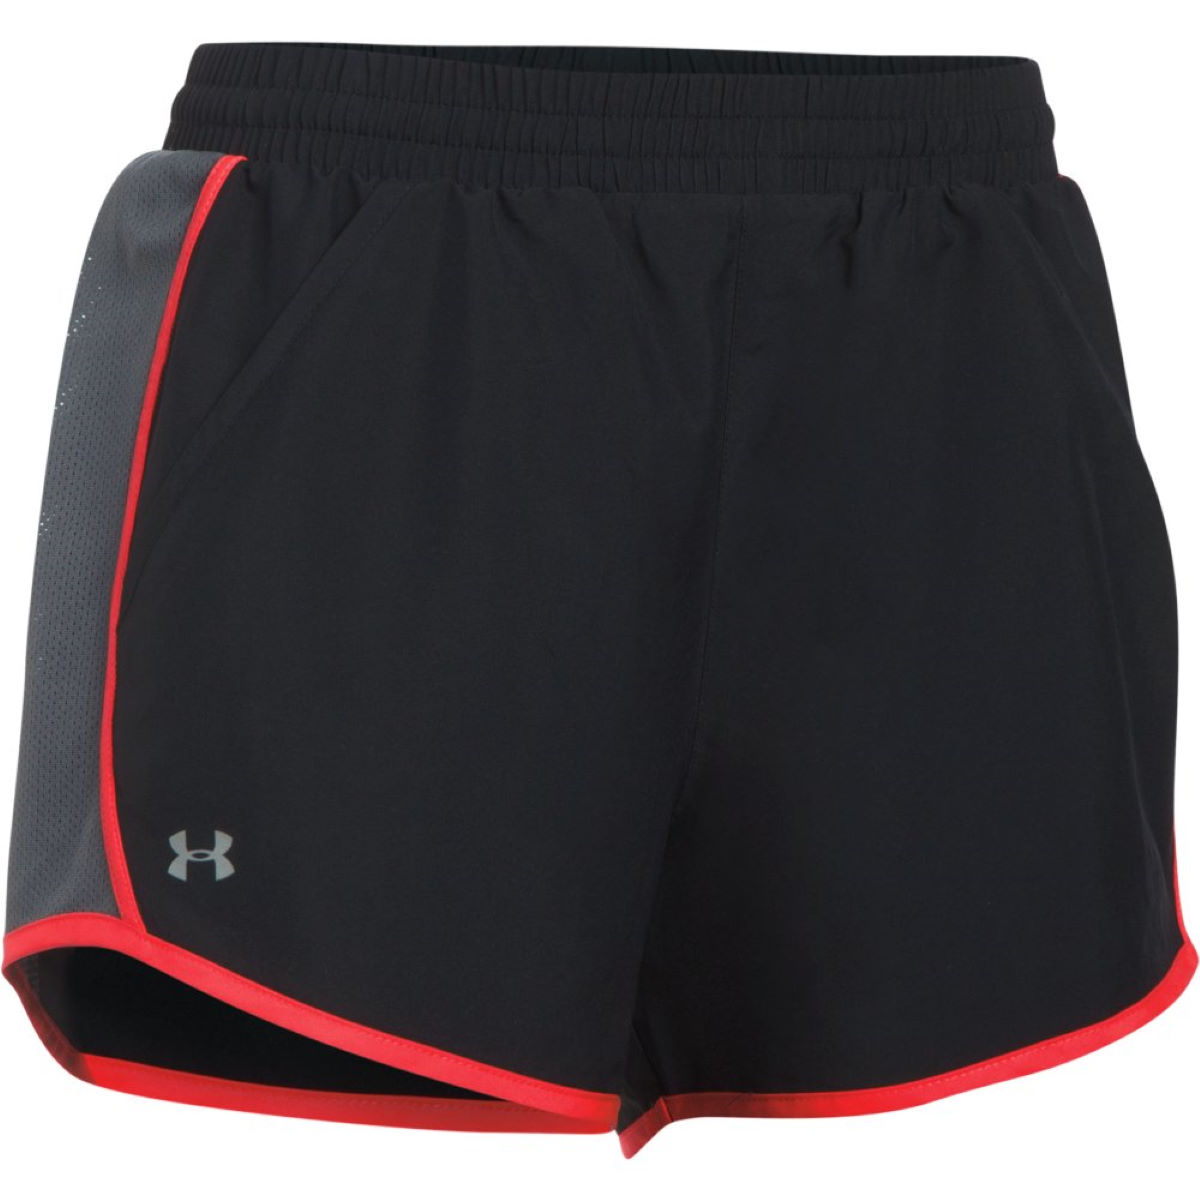 Short Femme Under Armour Fly By - XS Black/Marathon Red